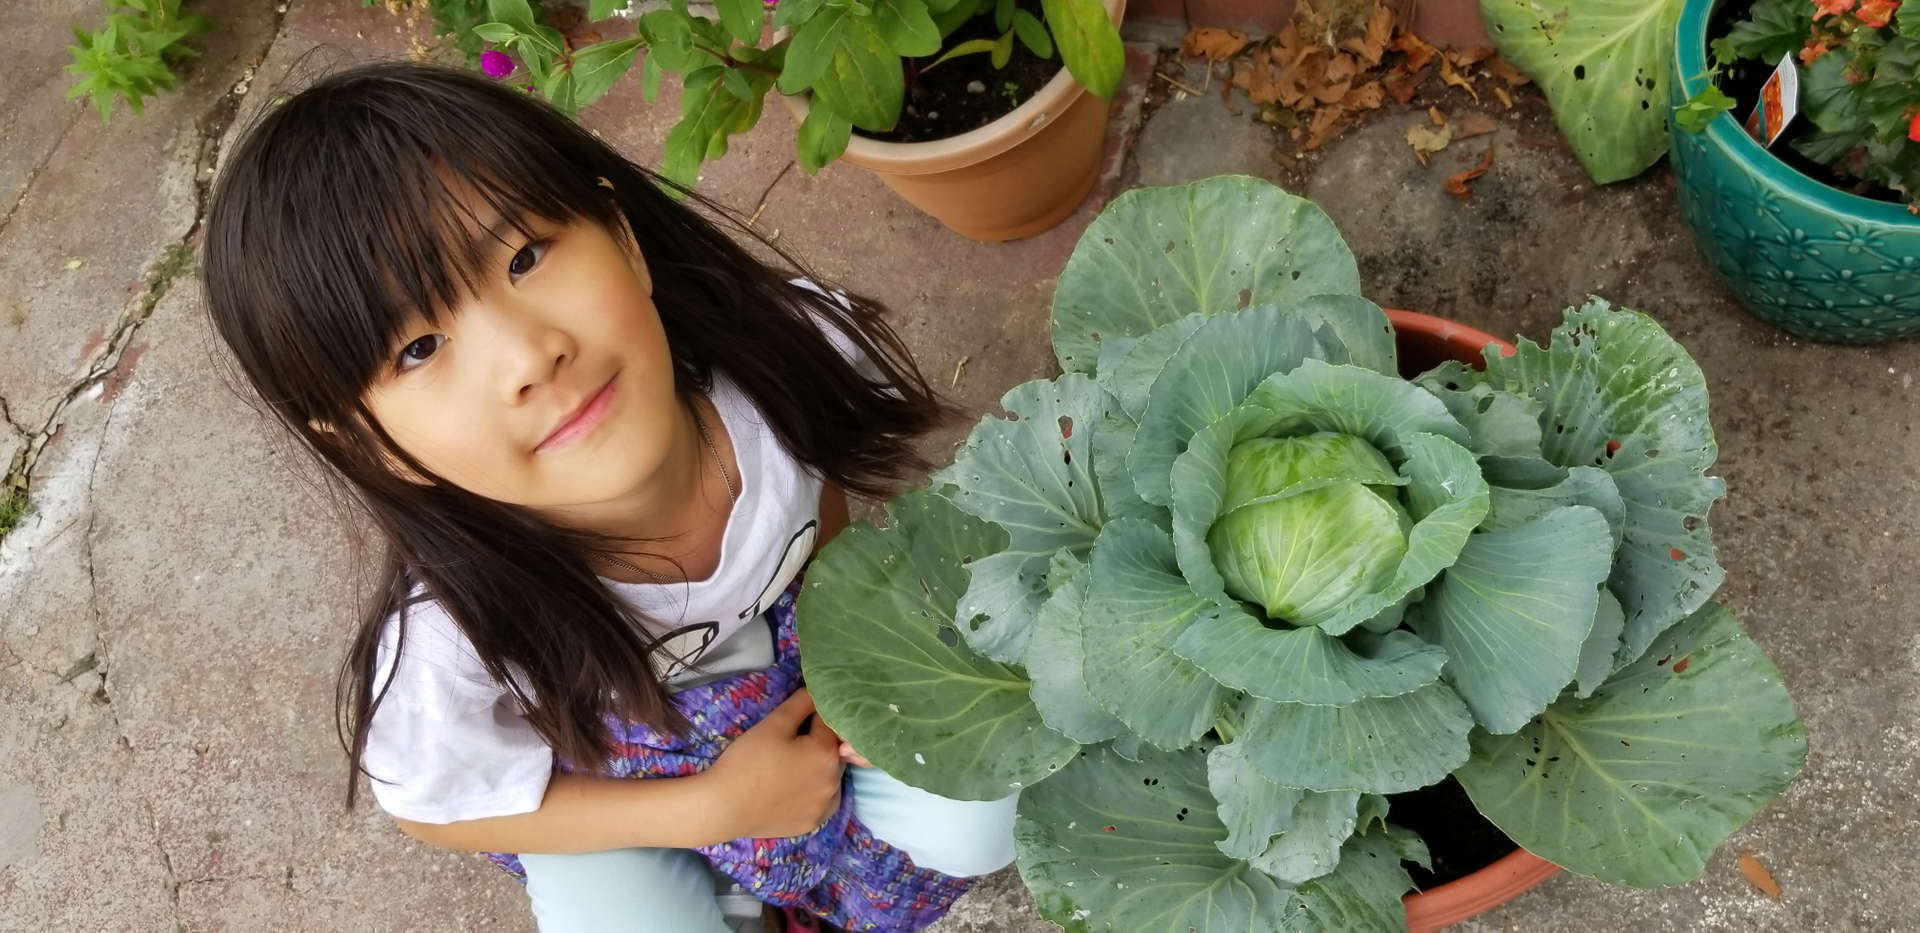 Hei Tung and her cabbage plant